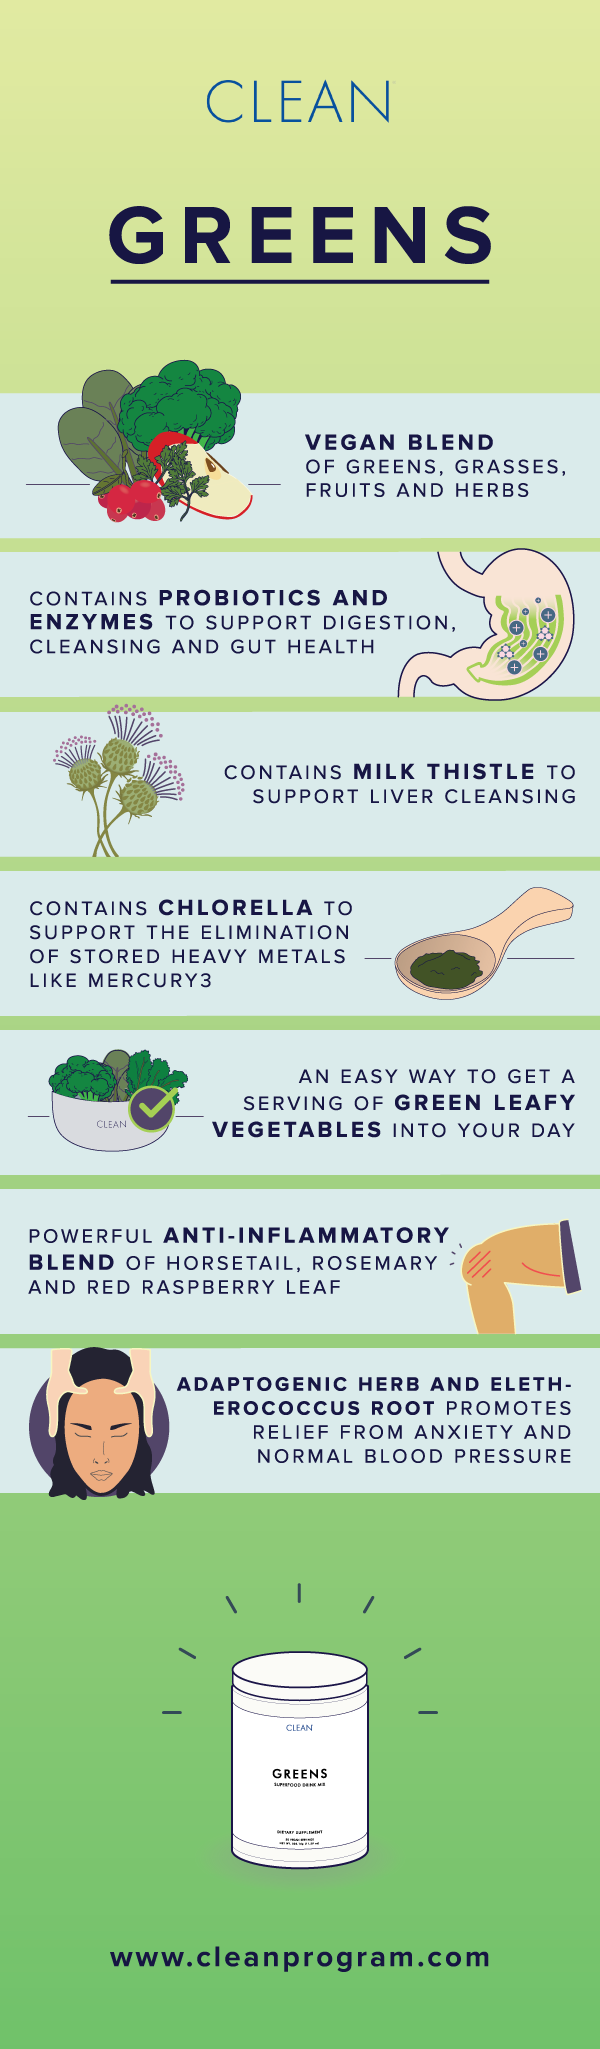 CLEAN_Greens_Infographic.png